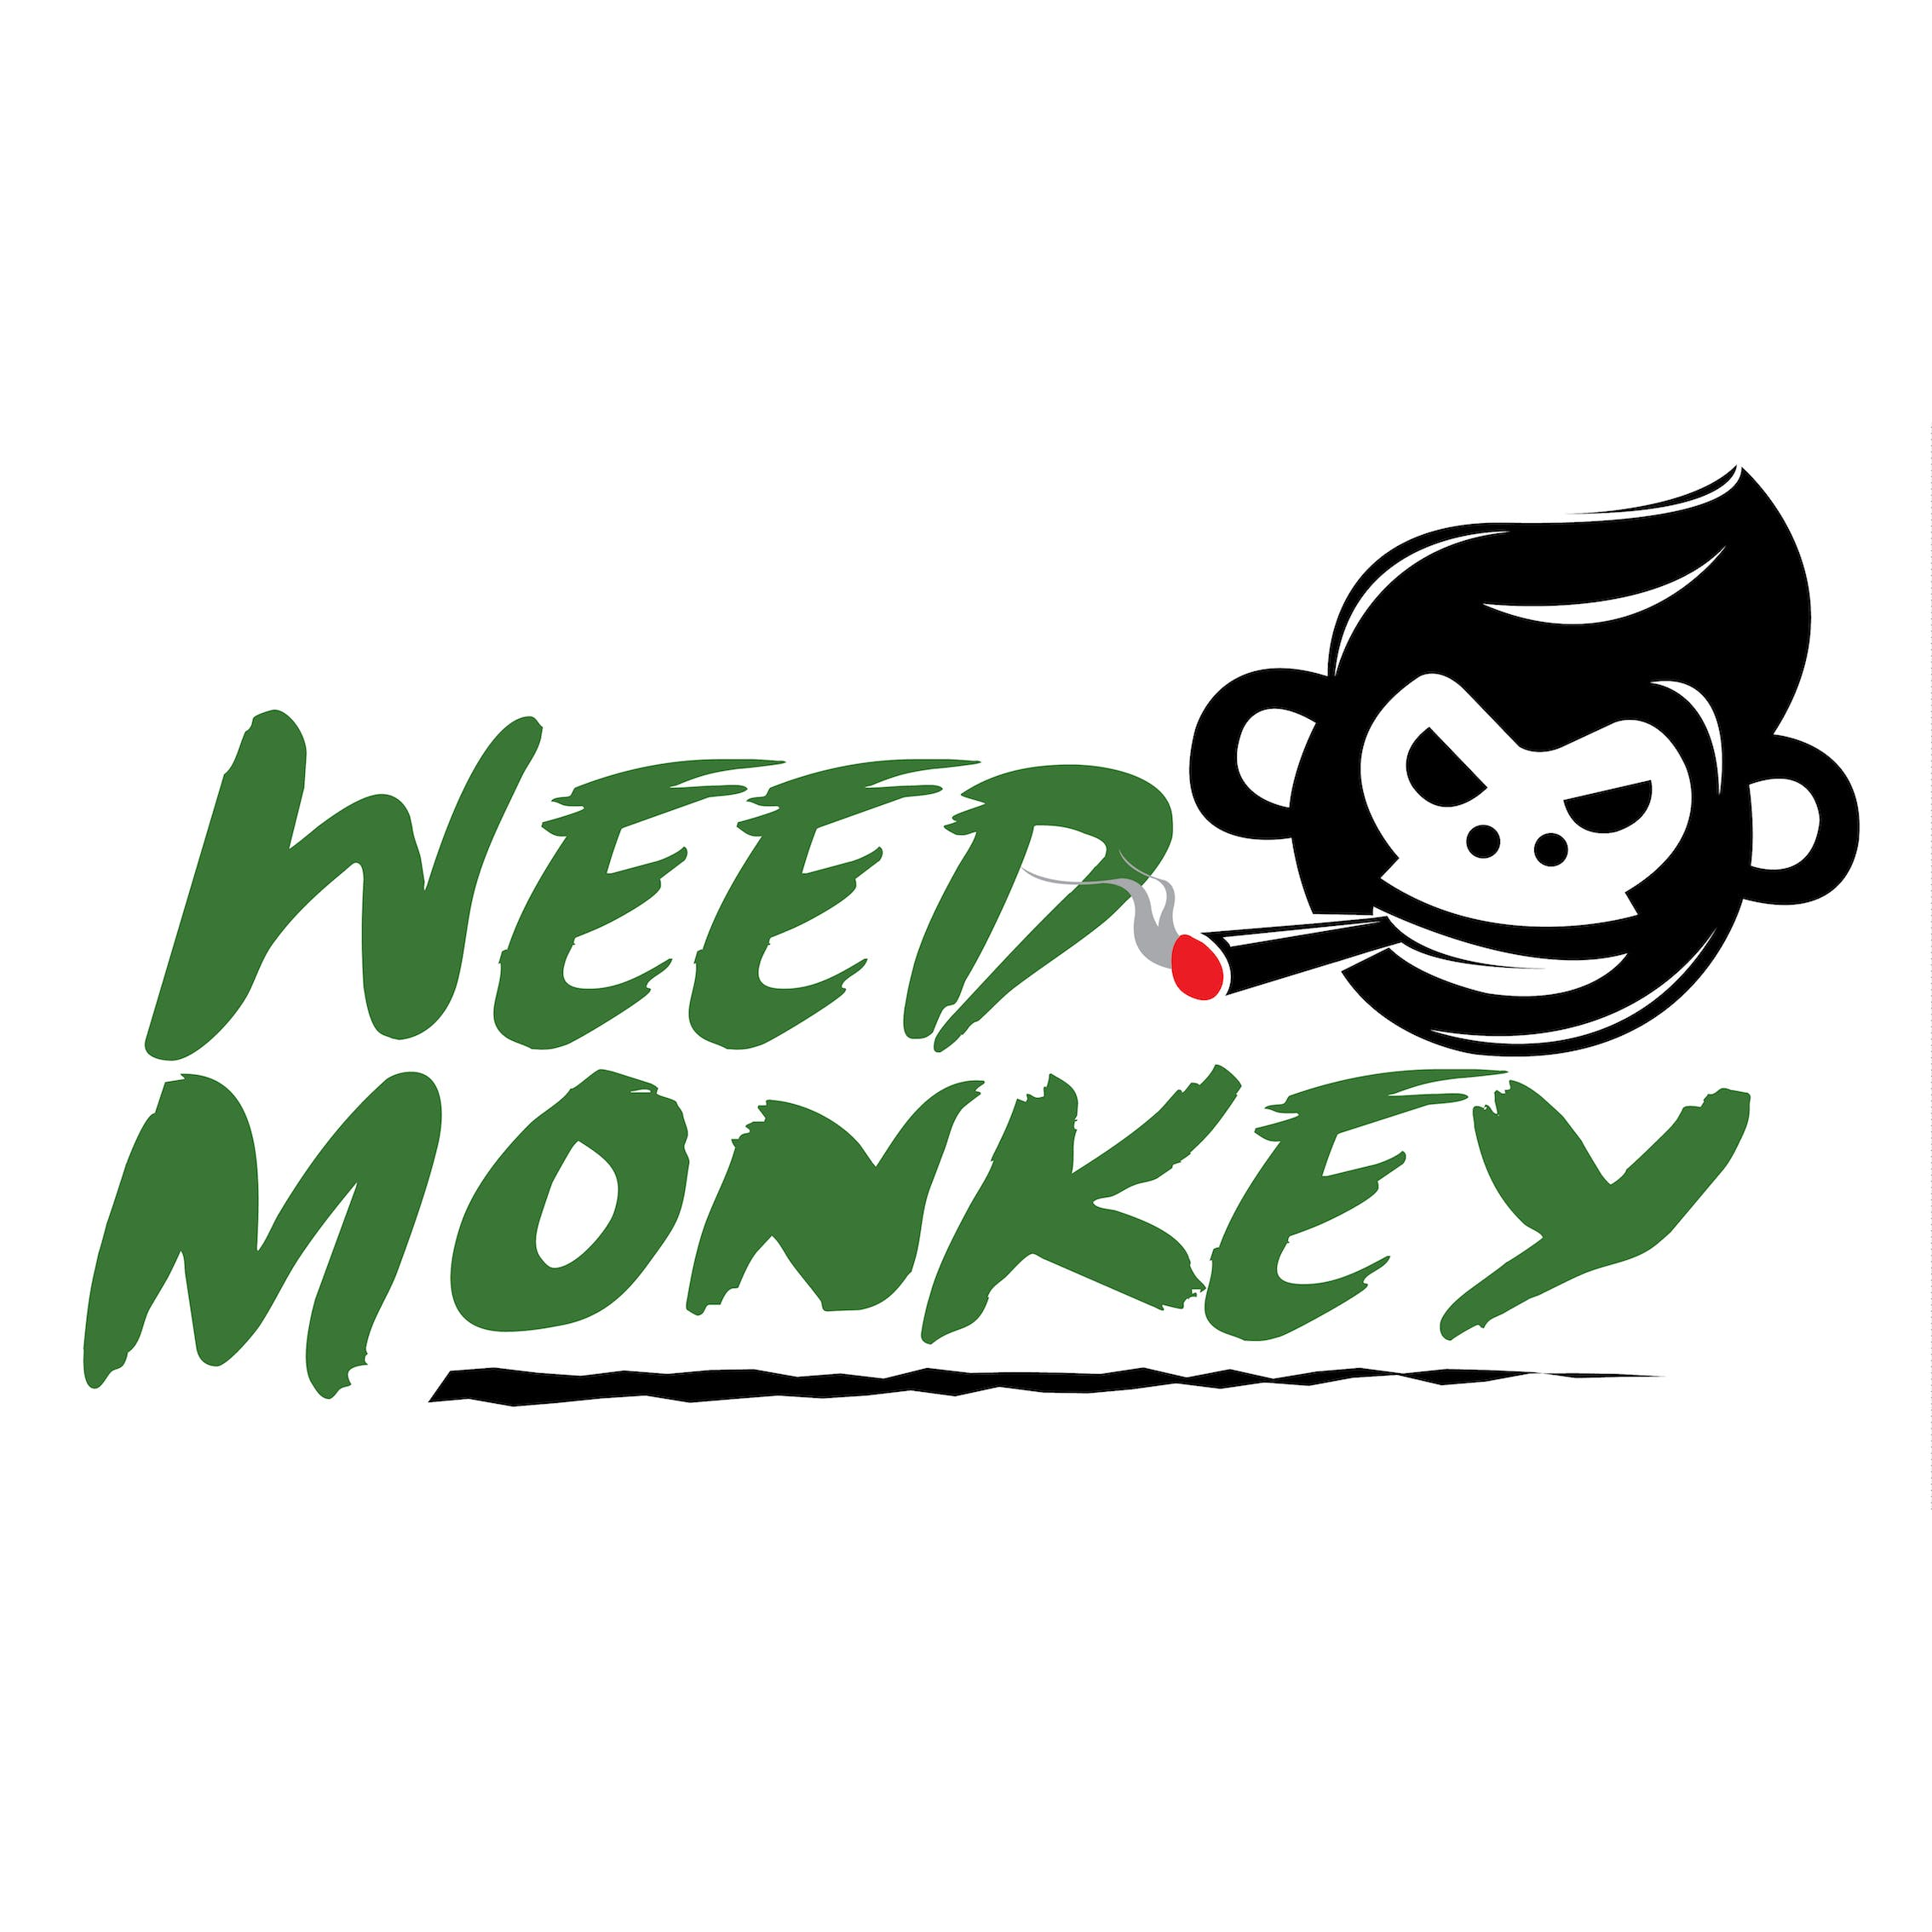 WEED MONKEY Info & Details.